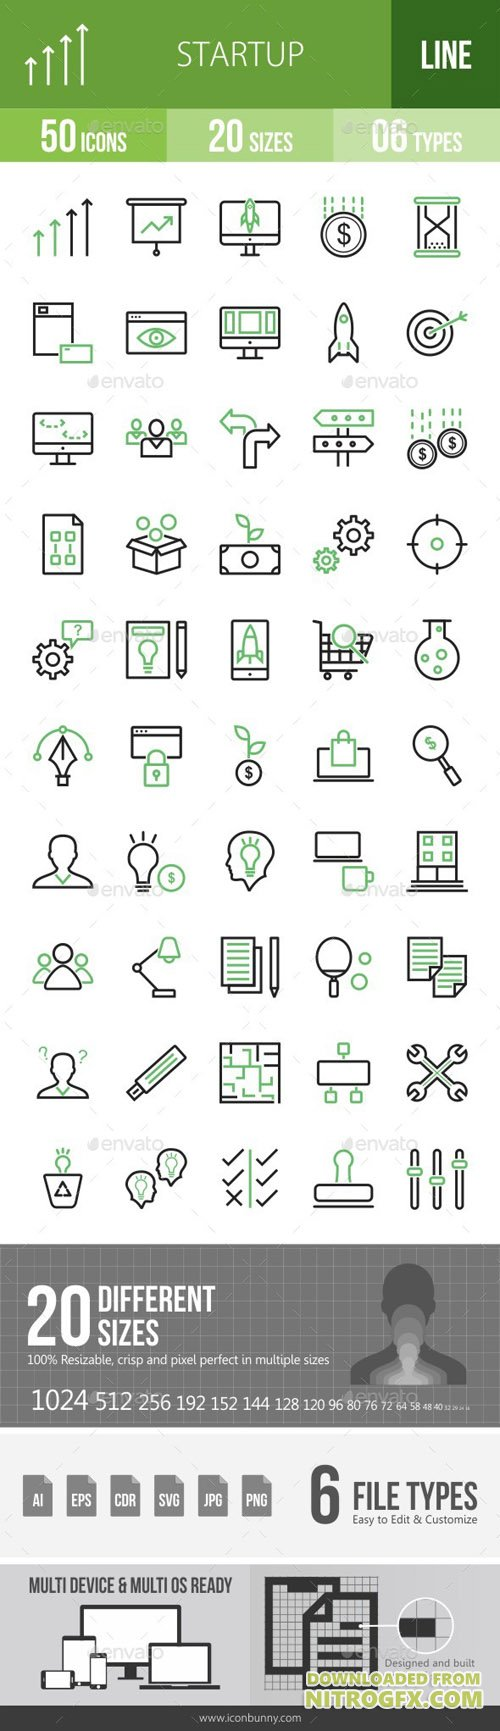 Startup Line Green & Black Icons 16847634